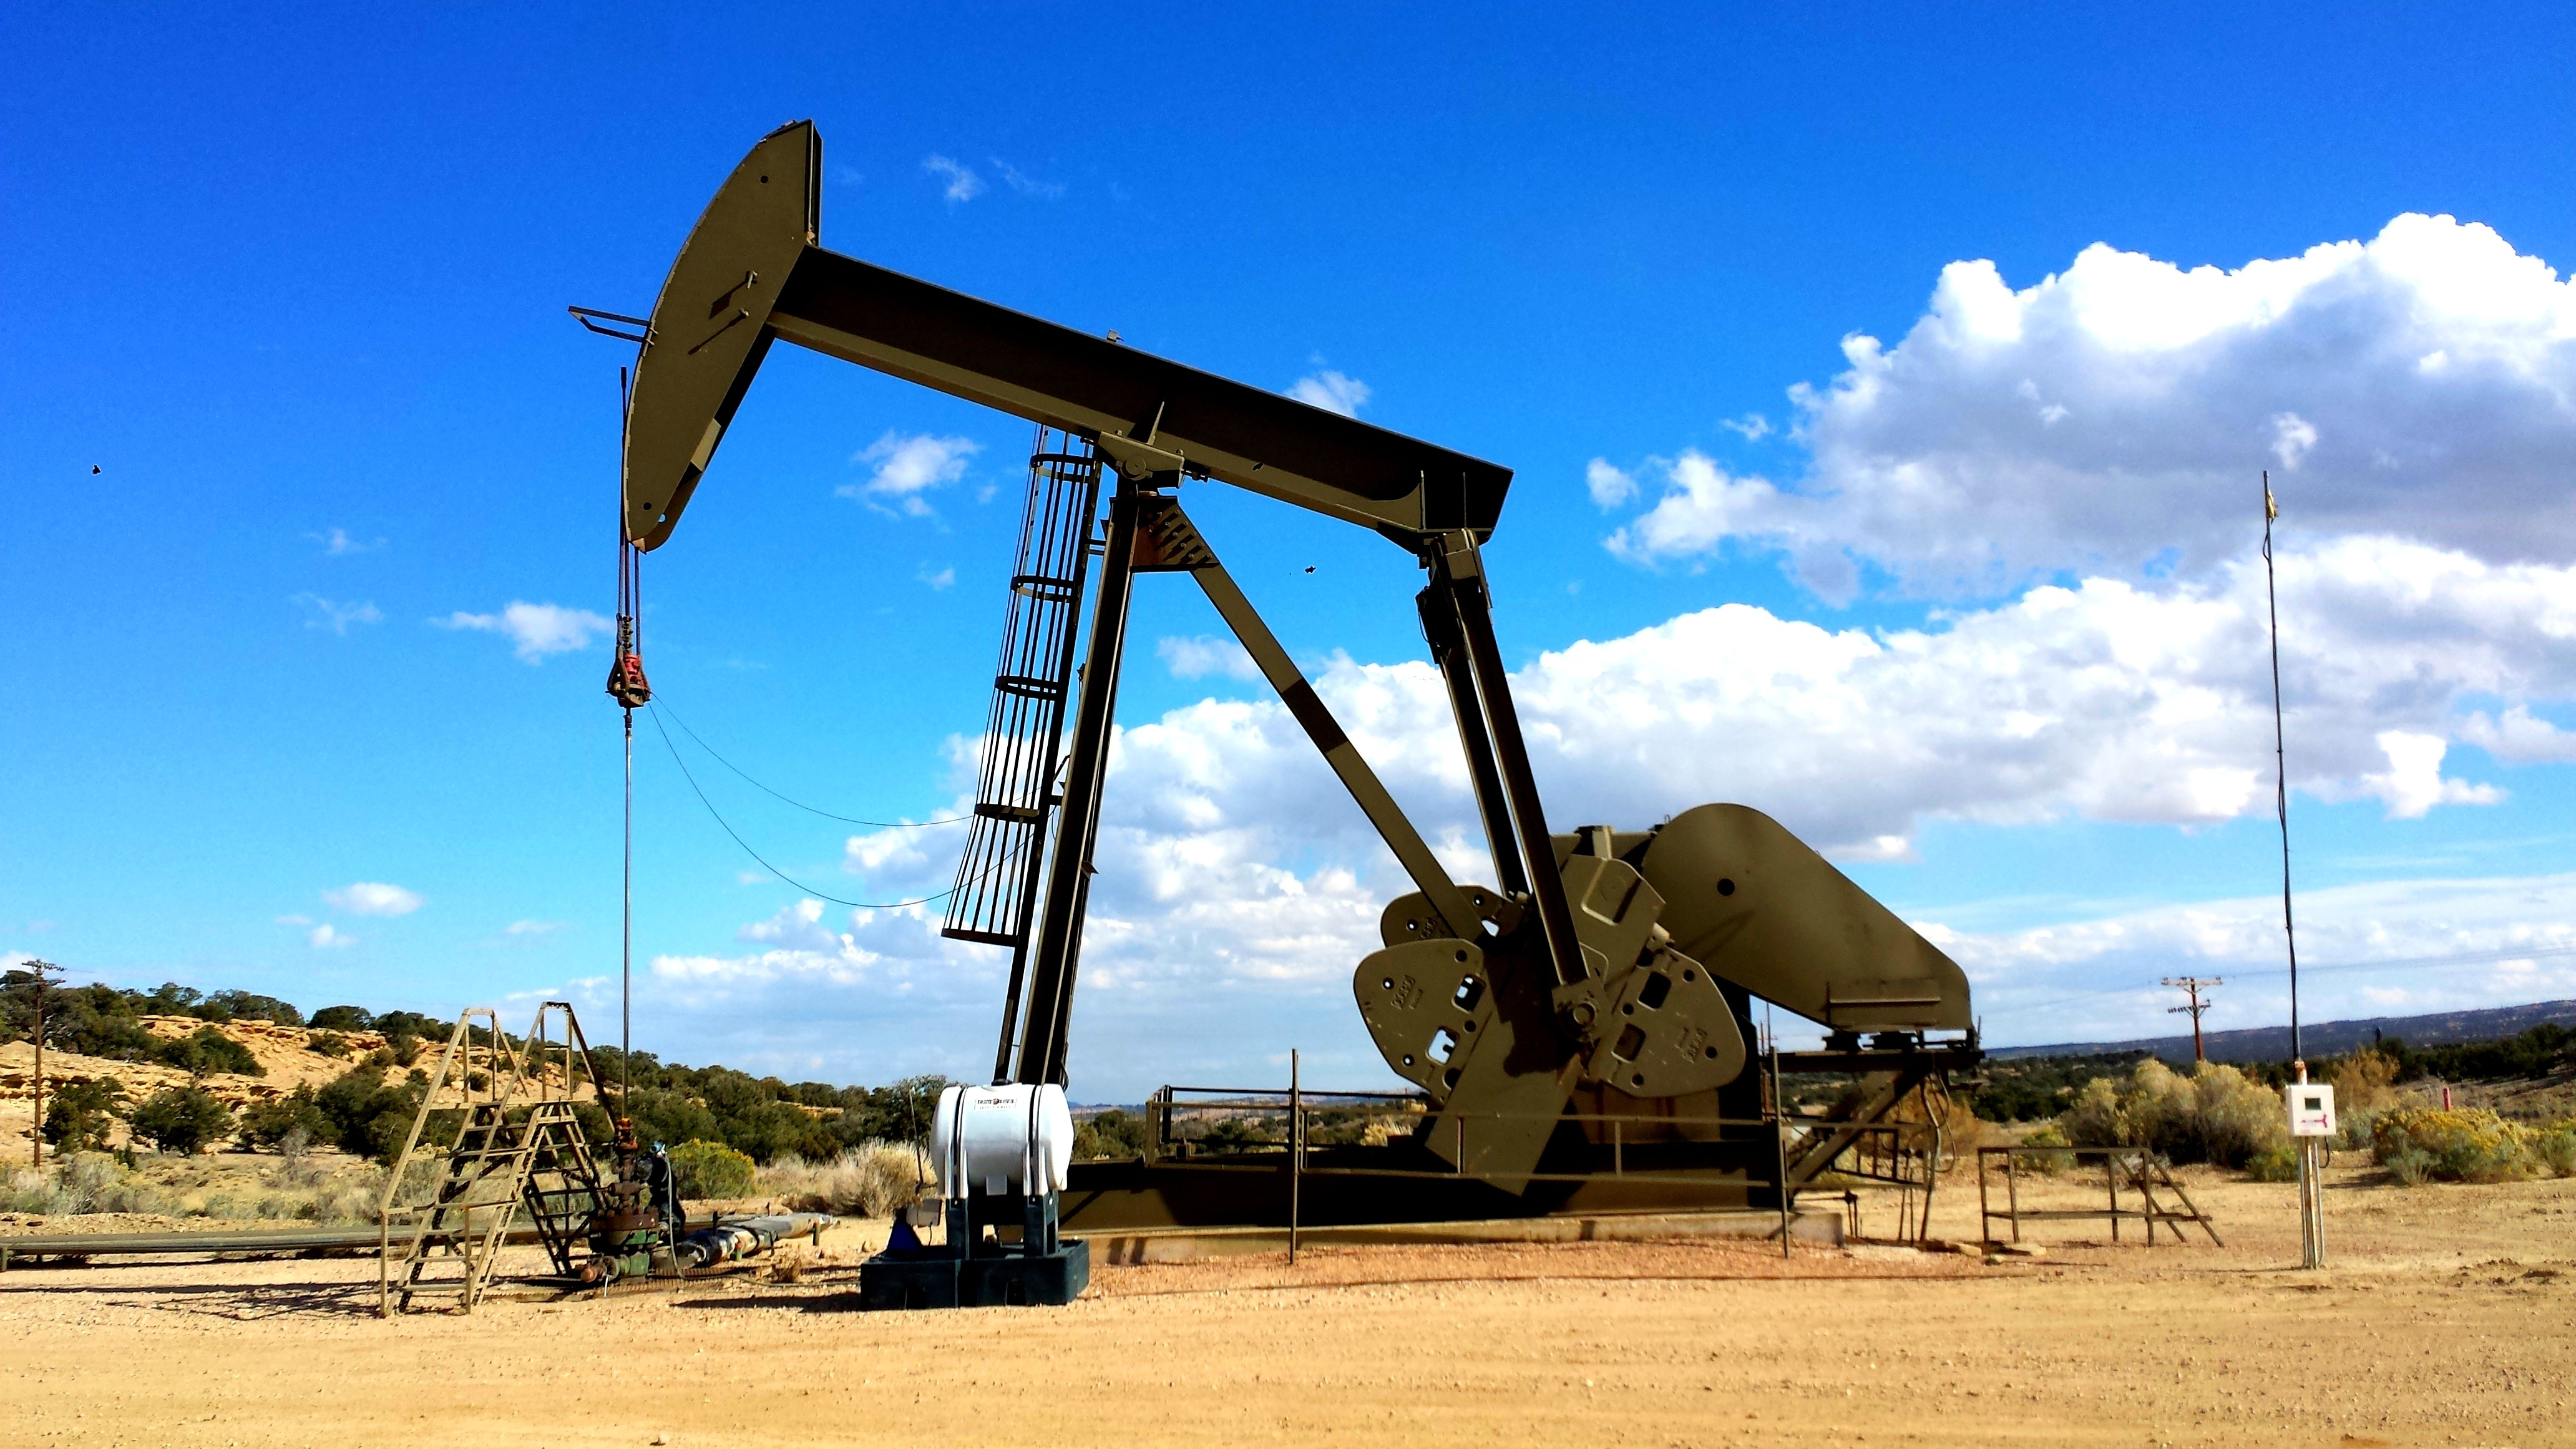 Blockchain may be coming to an oil field near you